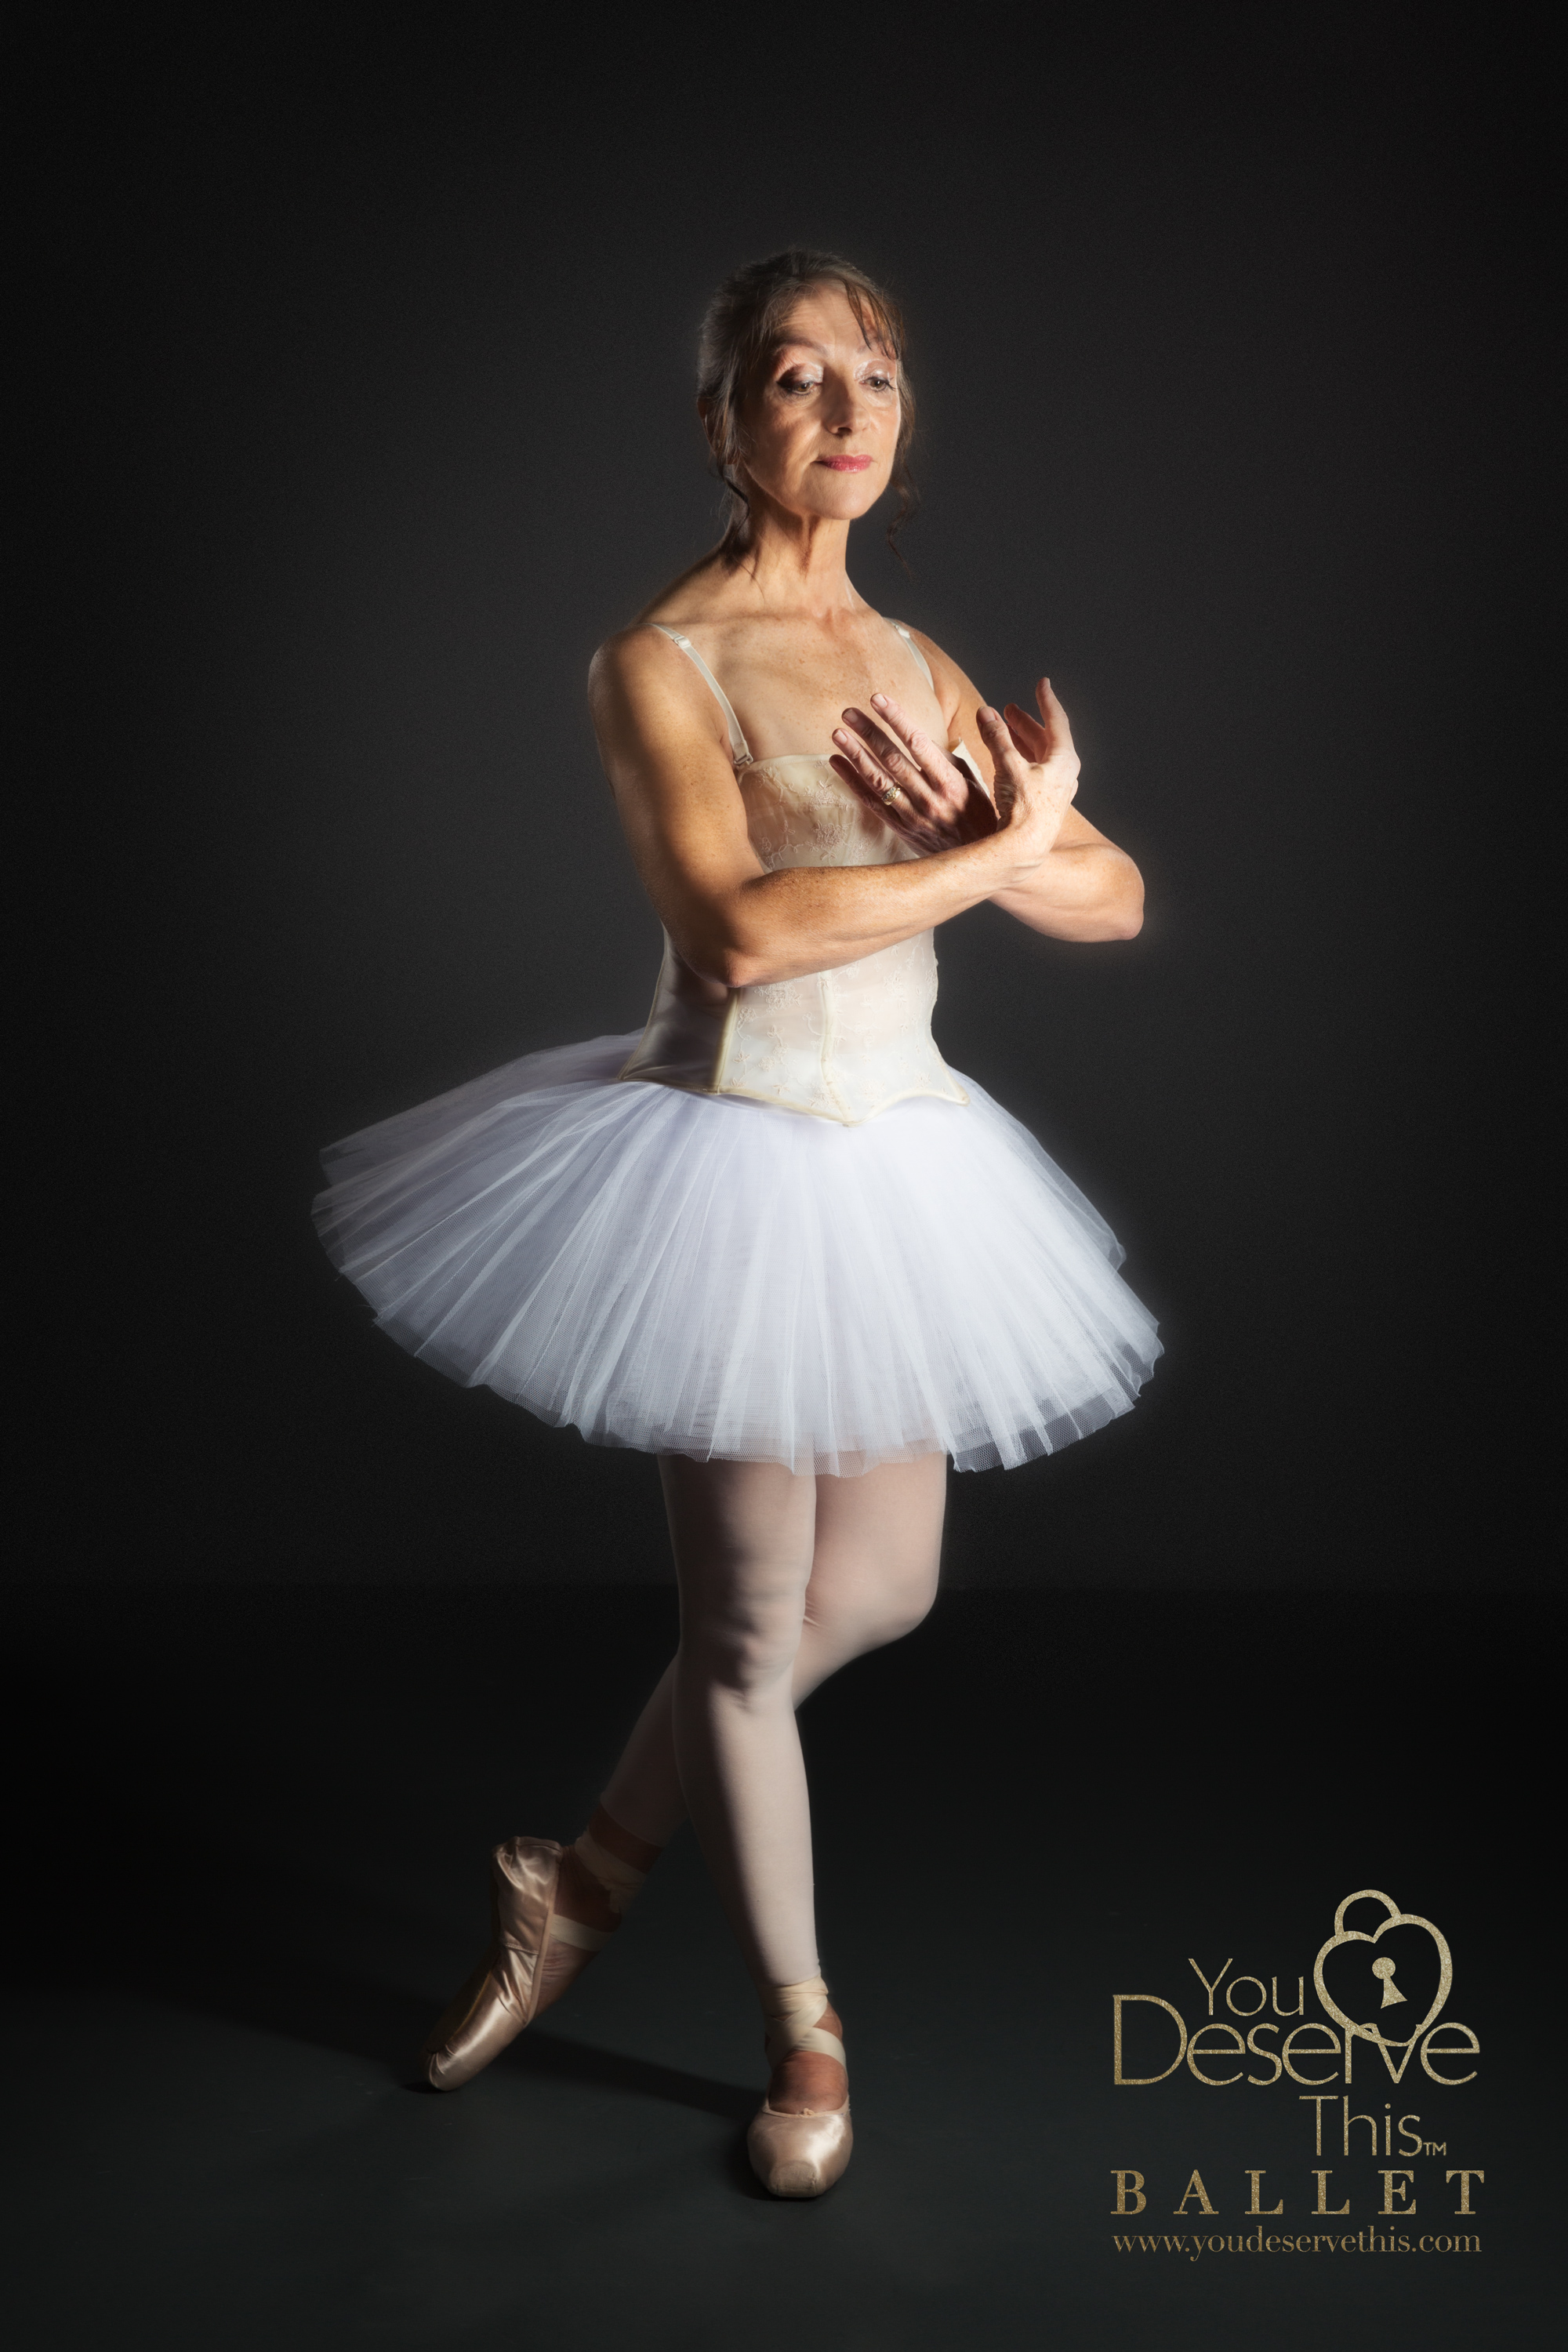 Doesn't she look wonderful? Ballet really does keep you in shape, we are so inspired! Hampshire Berkshire Ballet Photographer. www.youdeservethis.com